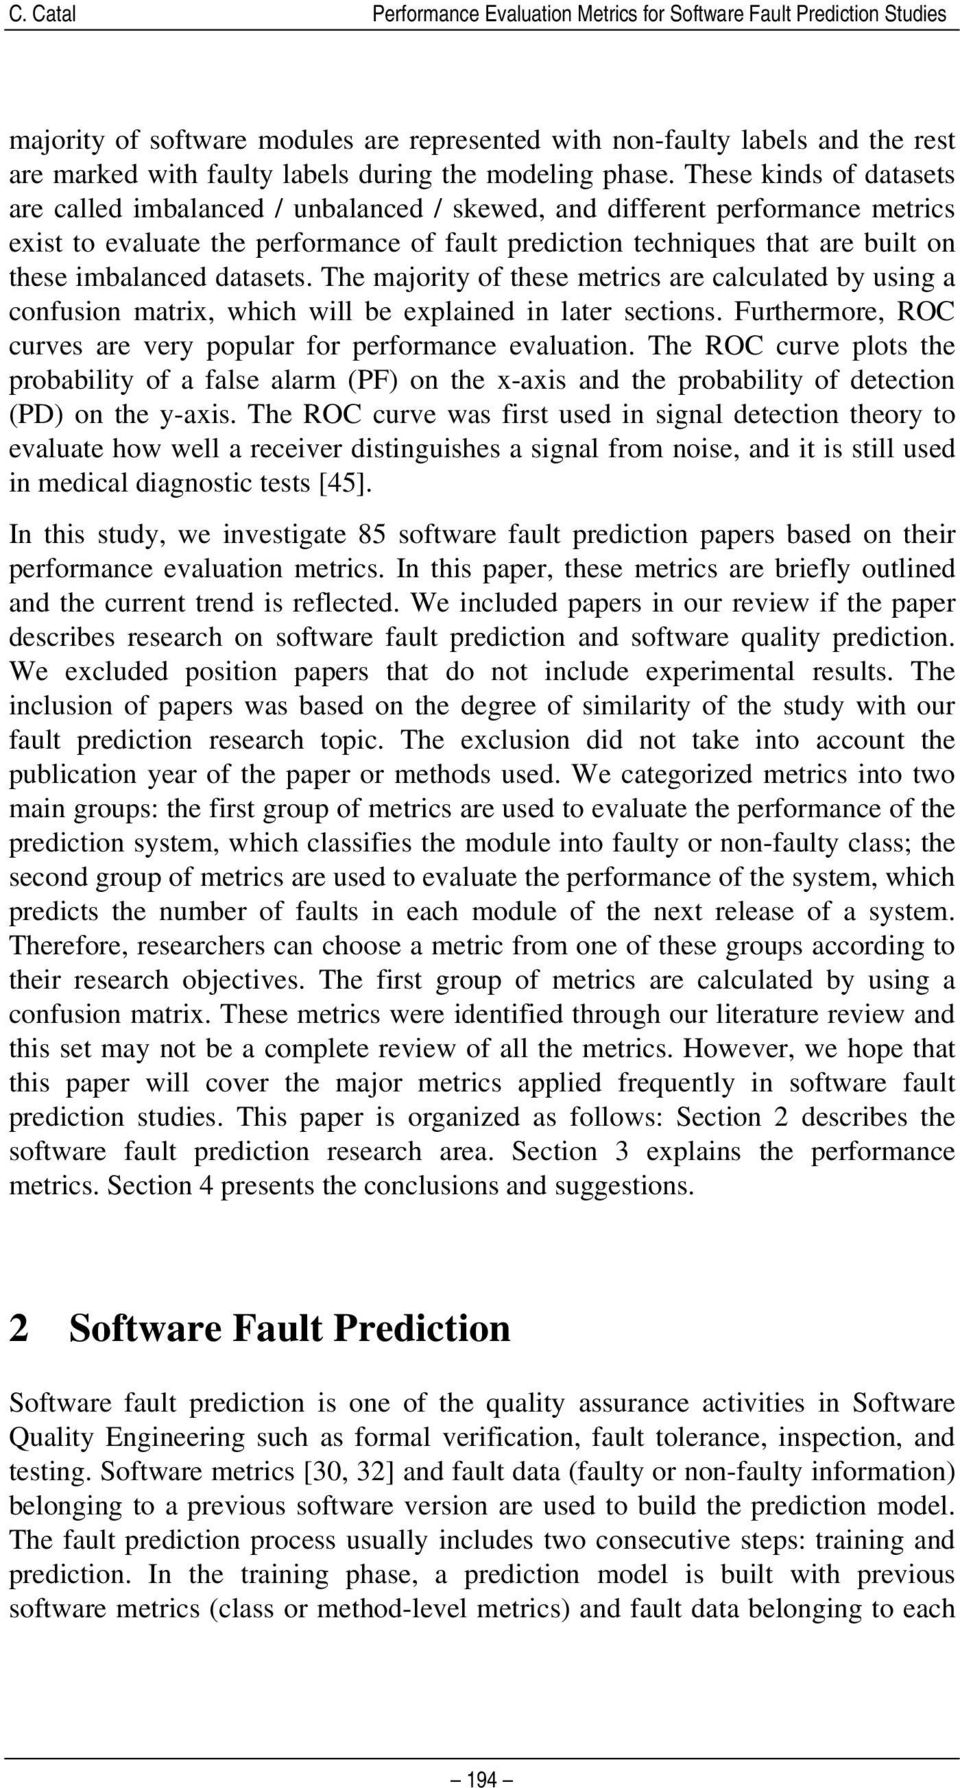 These kinds of datasets are called imbalanced / unbalanced / skewed, and different performance metrics exist to evaluate the performance of fault prediction techniques that are built on these